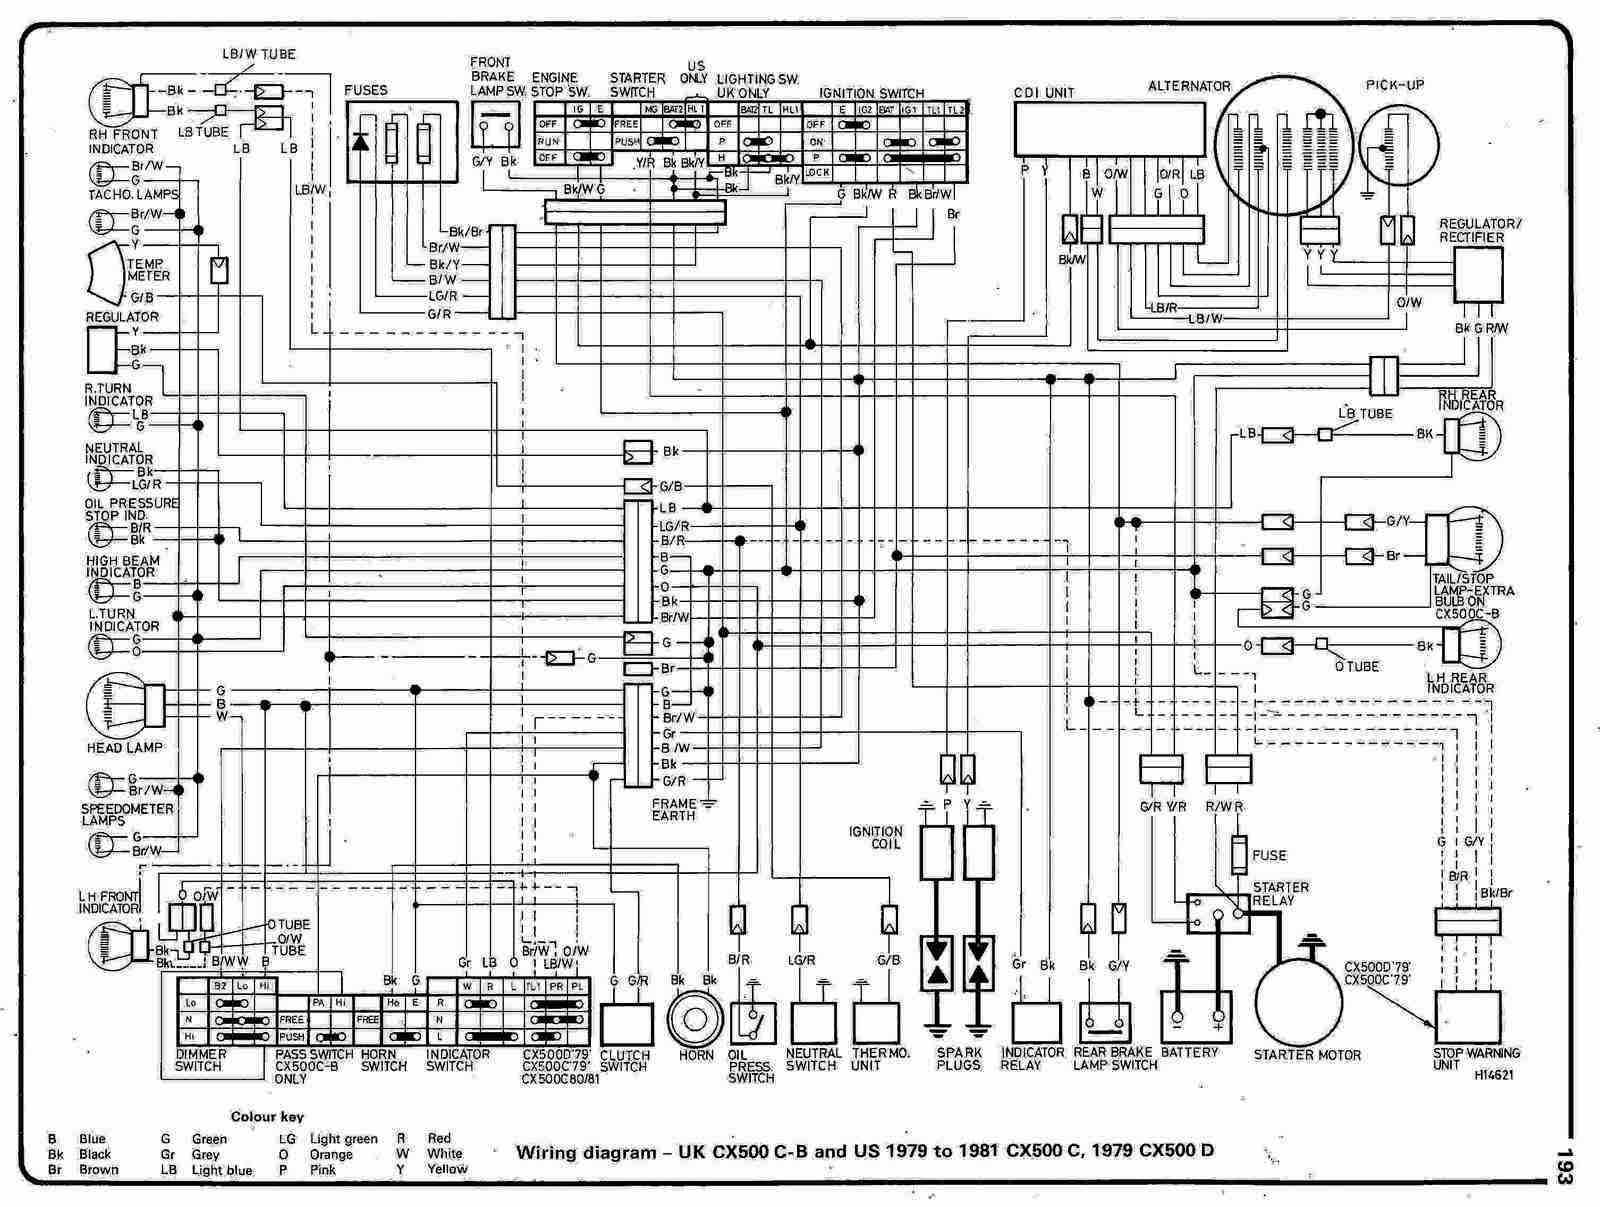 Honda motorcycle manuals pdf wiring diagrams fault codes download fandeluxe Images